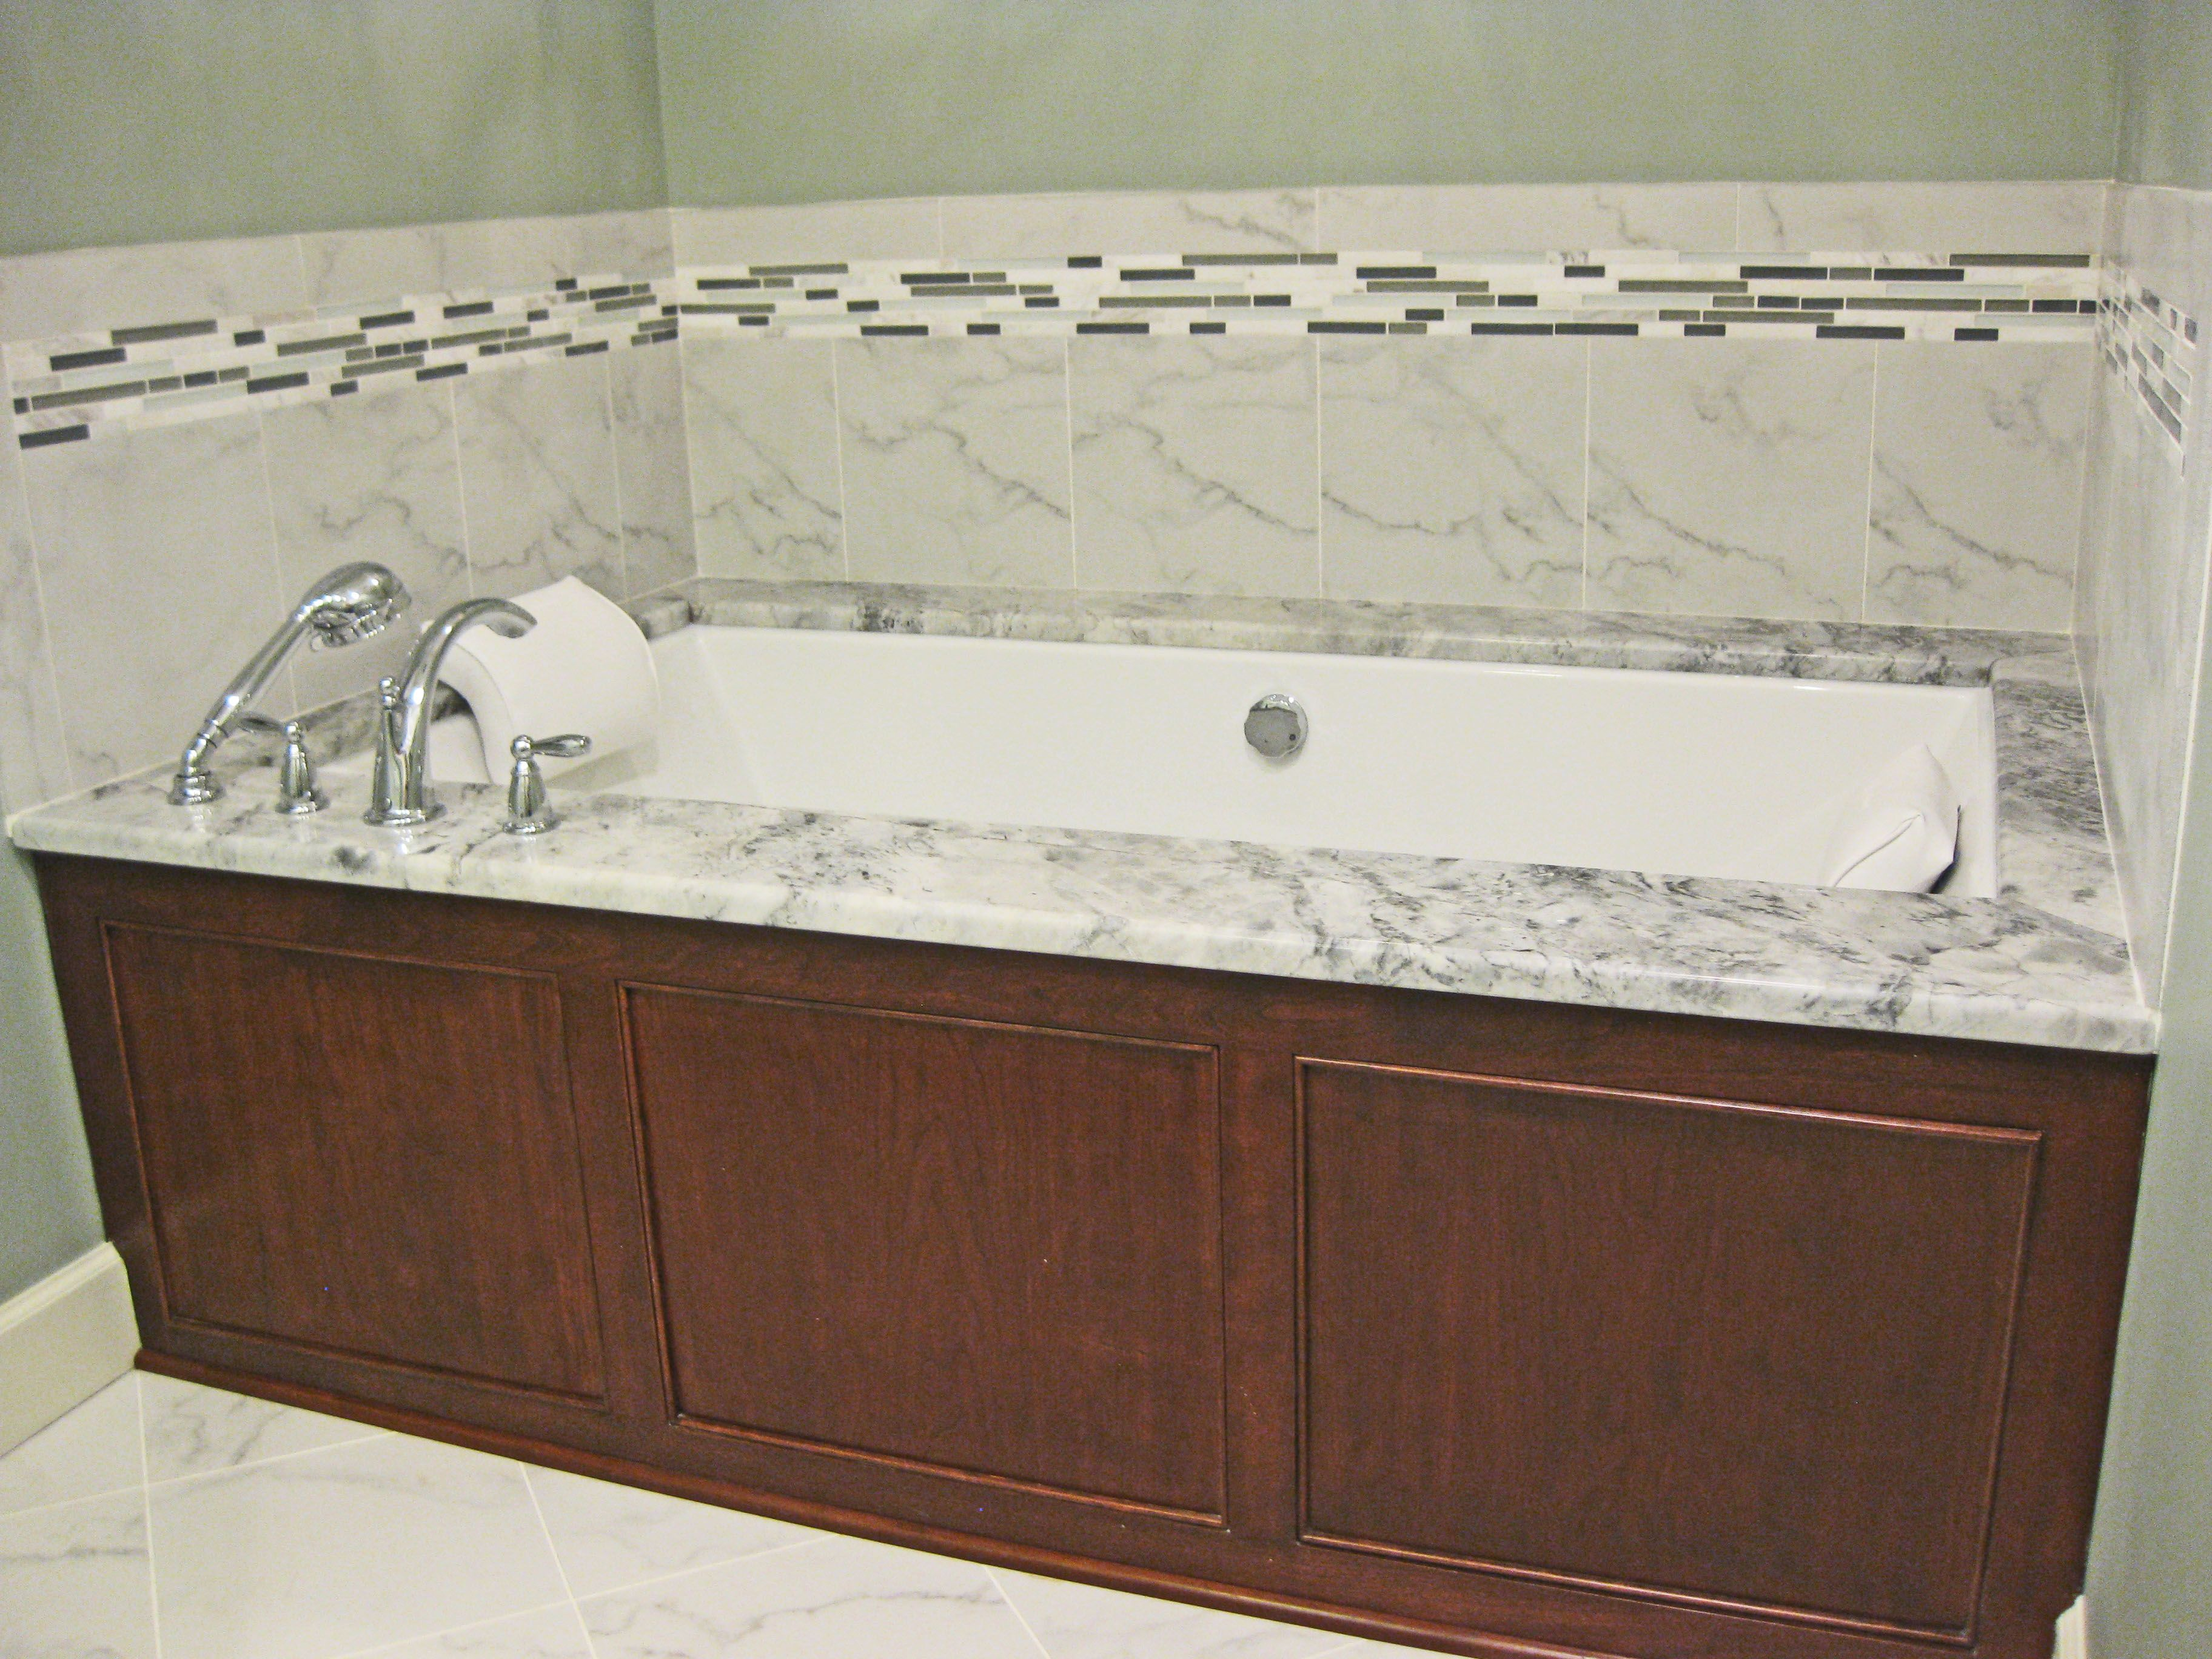 Undermount Jacuzzi Tub With Super White Granite Surround And White